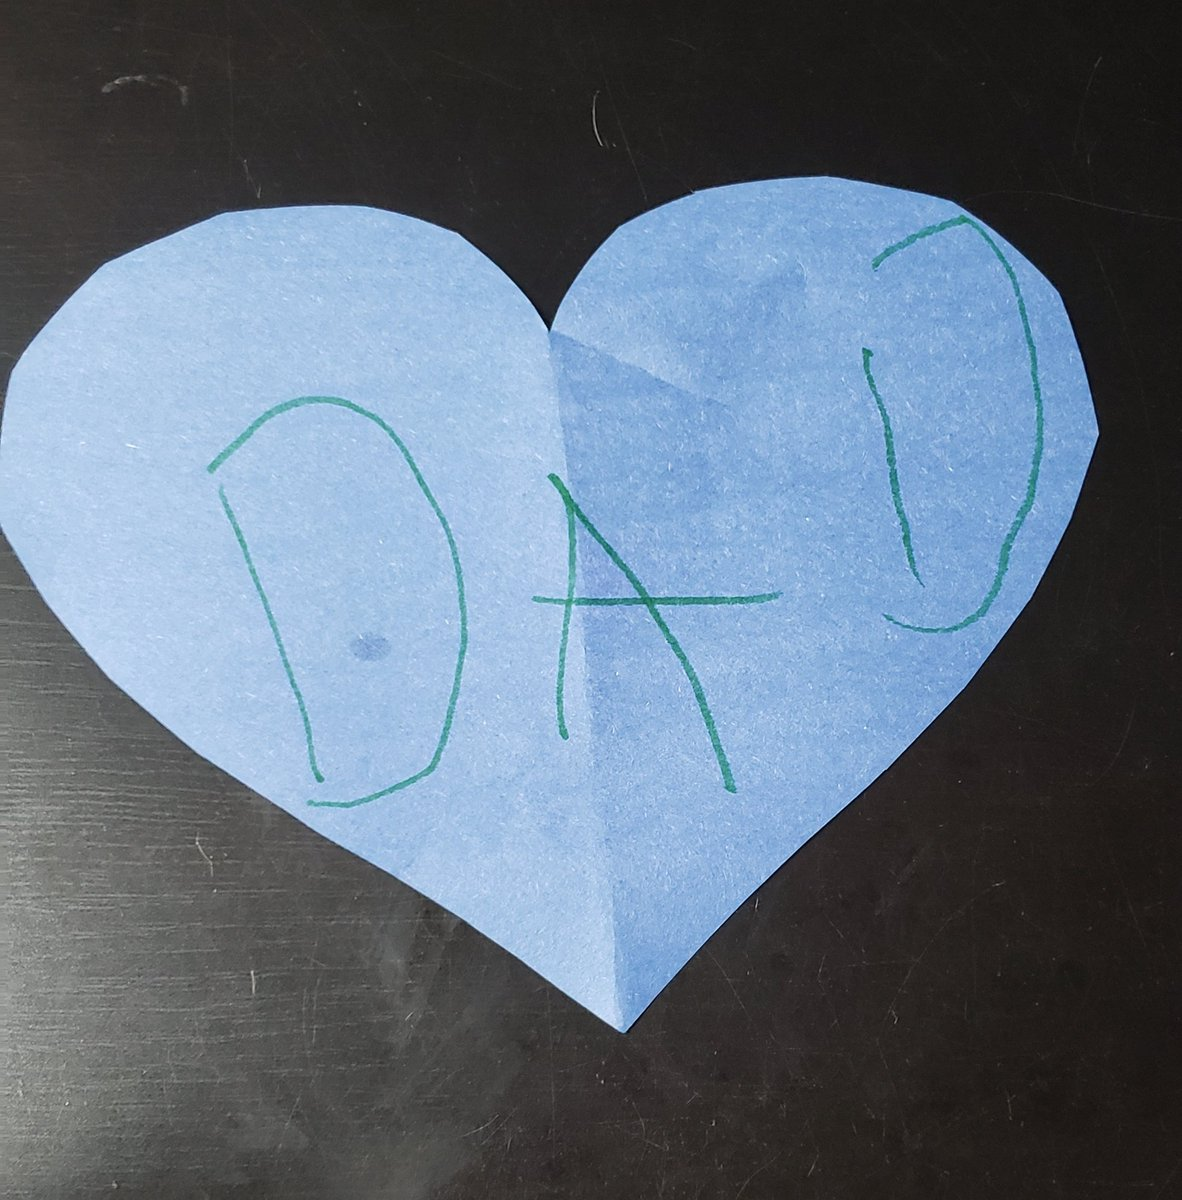 I've been self-isolating from my kids because I'm still working outside the house. My son left me this on the stairs. He's such a sweet boy. <br>http://pic.twitter.com/GbU4UFj3uI